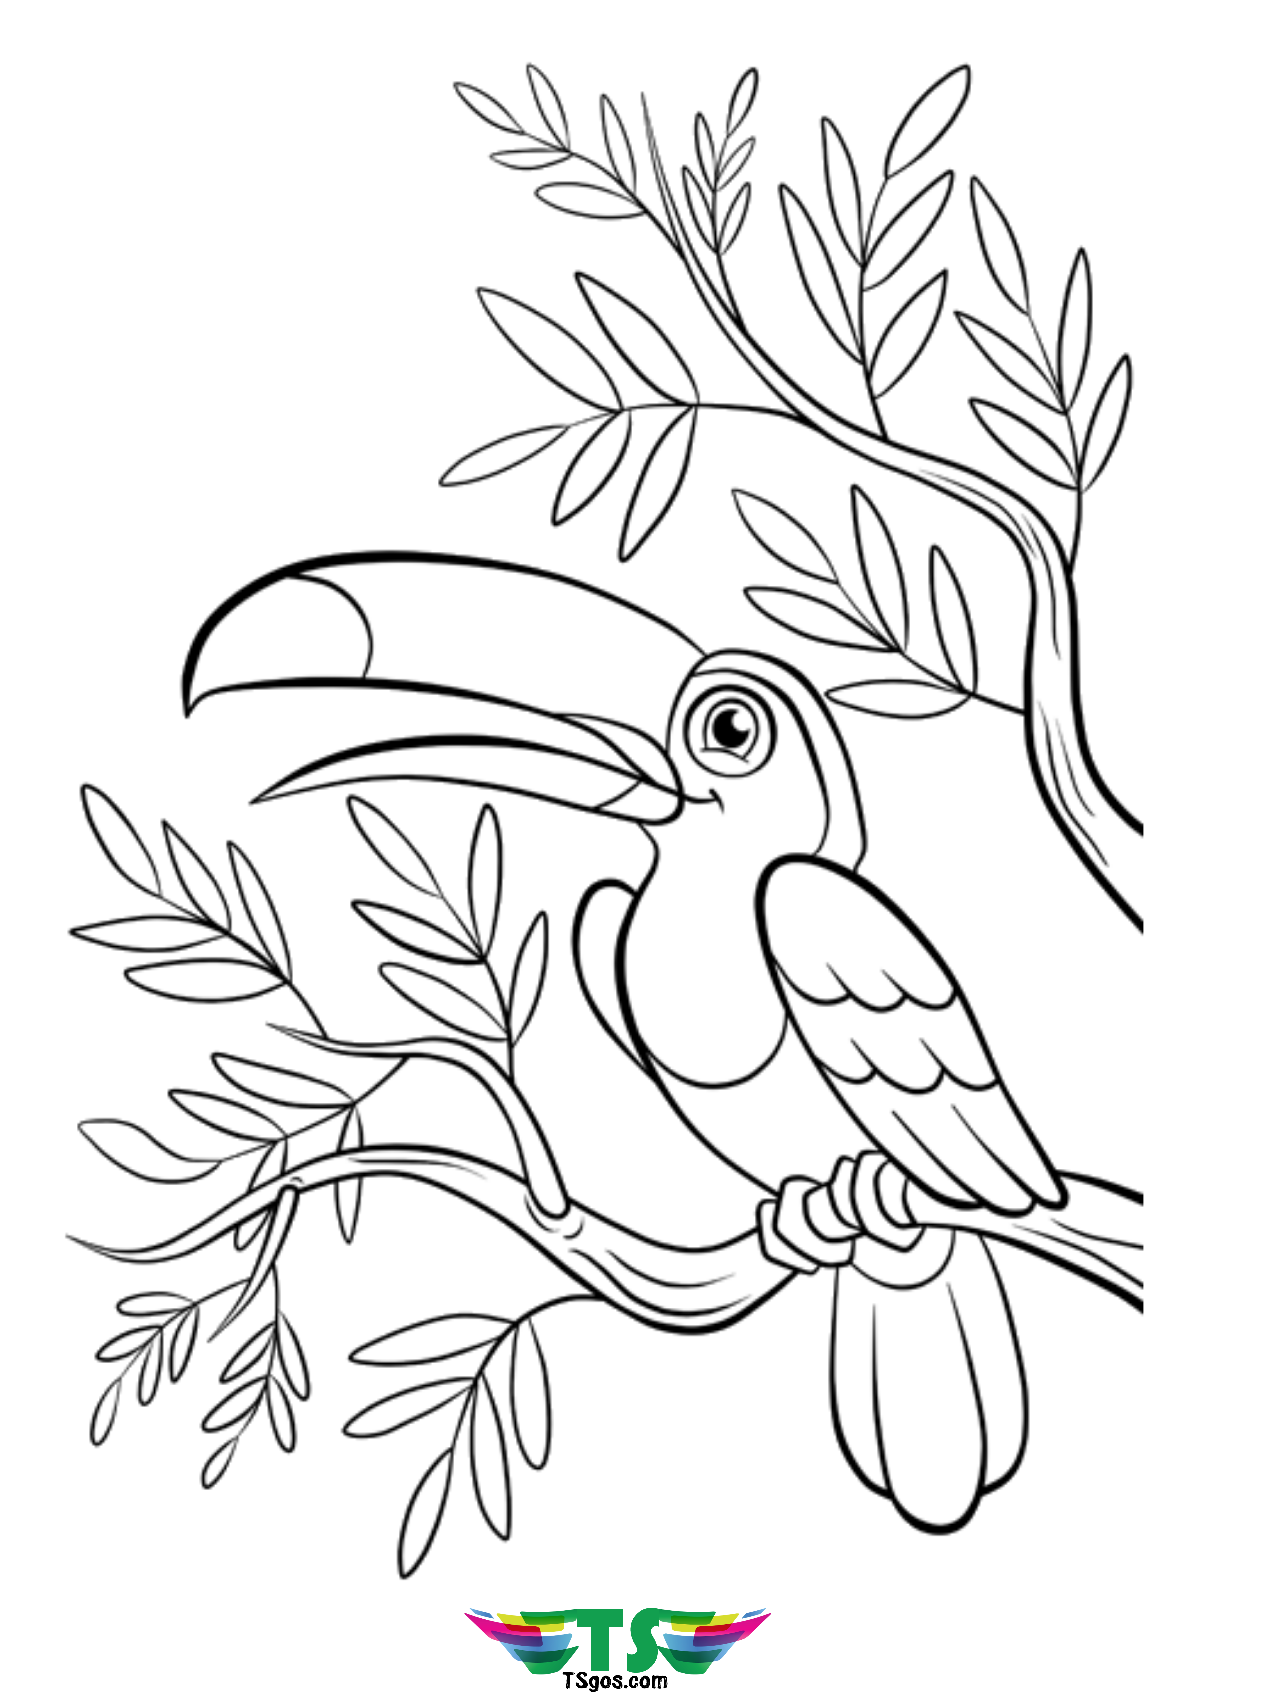 coloring pages for kids birds beautiful bird coloring page free download tsgoscom pages coloring kids for birds